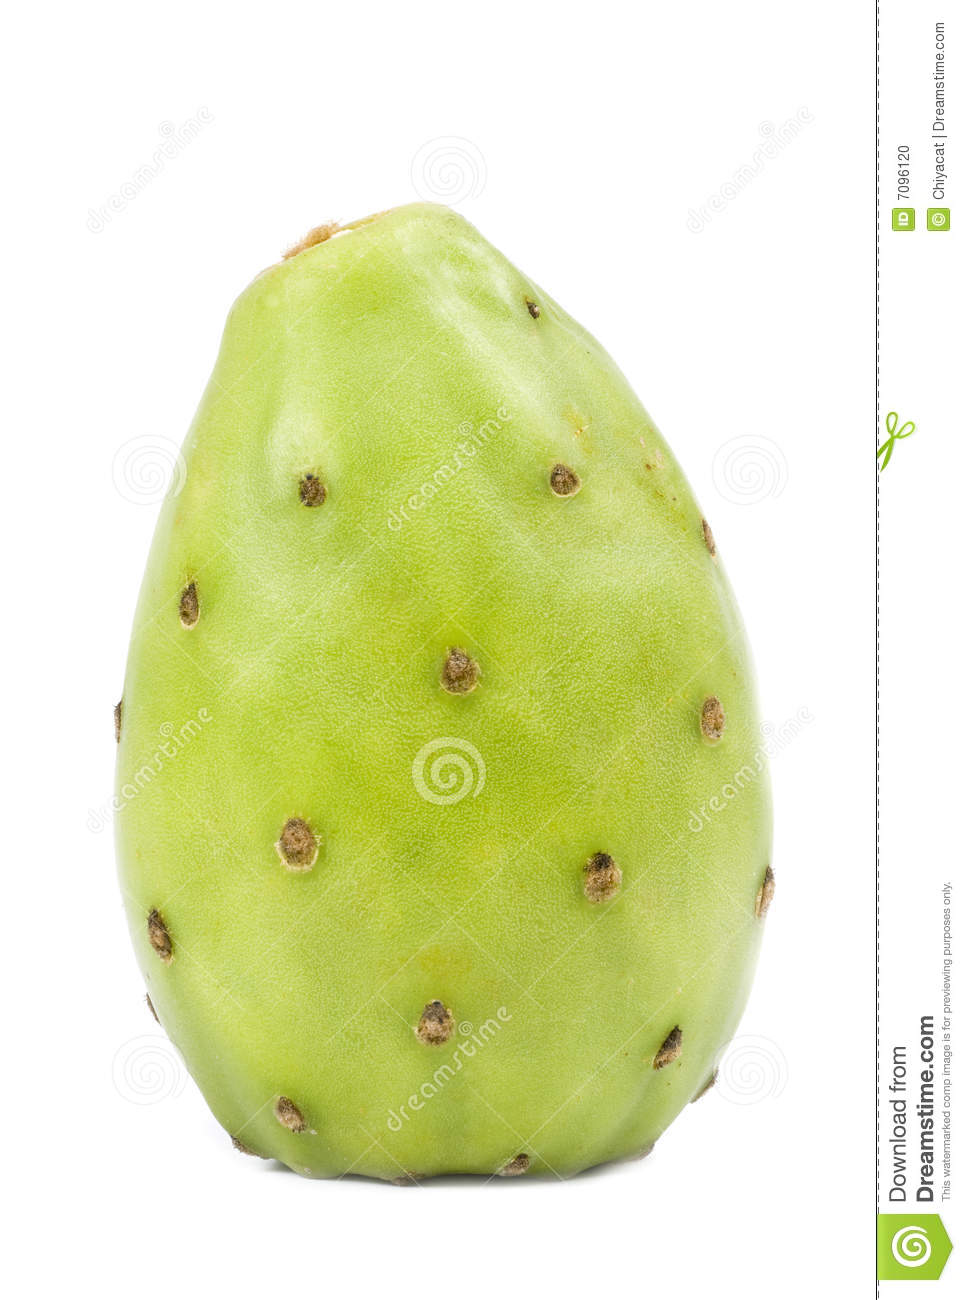 Green Cactus Pear Stock Photo - Image: 7096120